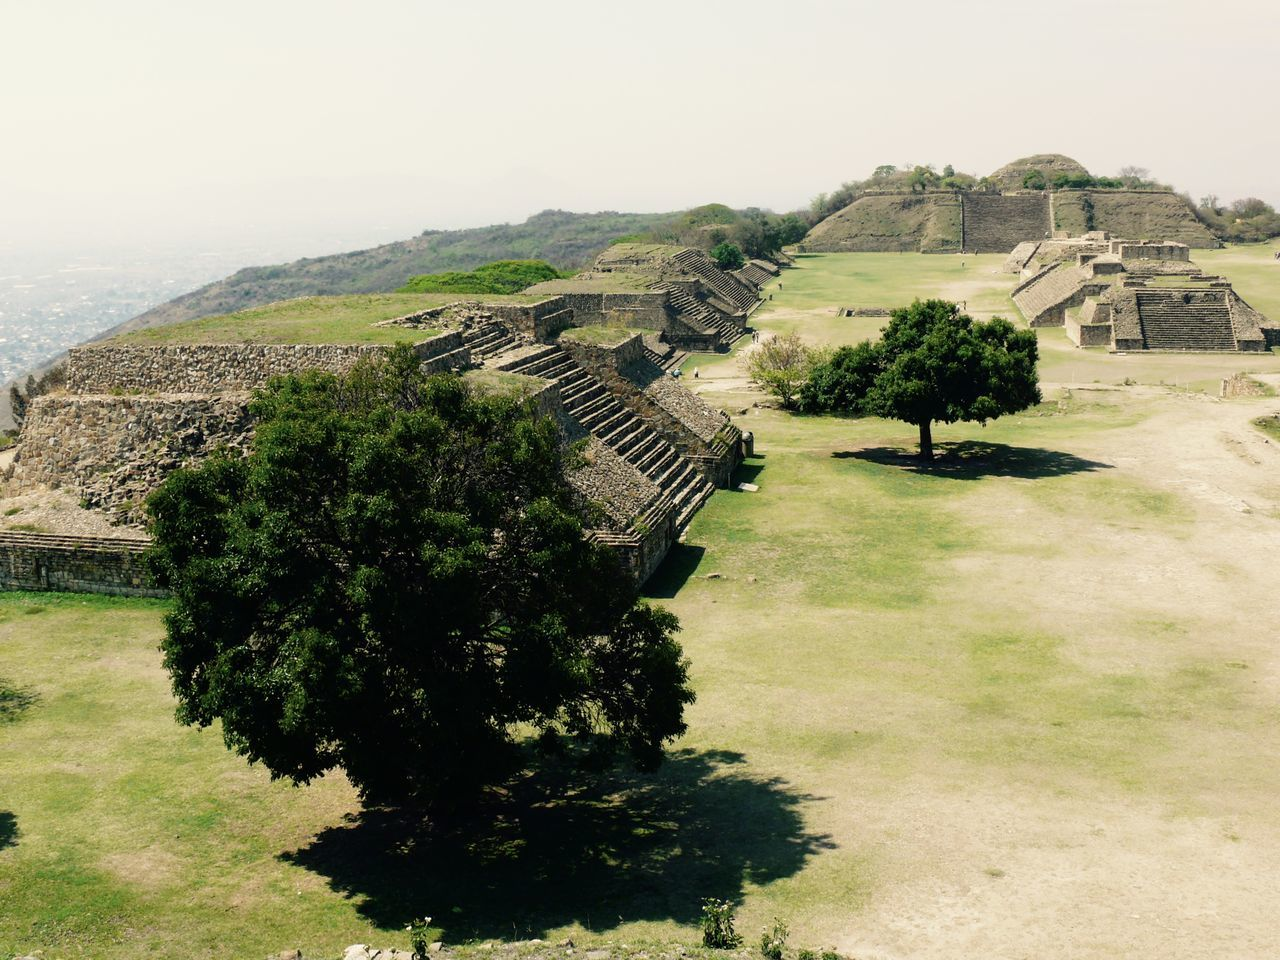 Monte Alban, just outside the city of Oaxaca. A truly awe-inspiring place where the voices of the ancient Zapotec people whisper to us through the centuries. Ancient Civilization Archeological Complex Building Exterior Built Structure Day Grass Landscape Mesoamerica Monte Alban No People Oaxaca México  Scenics Top Of The World Zapoteca